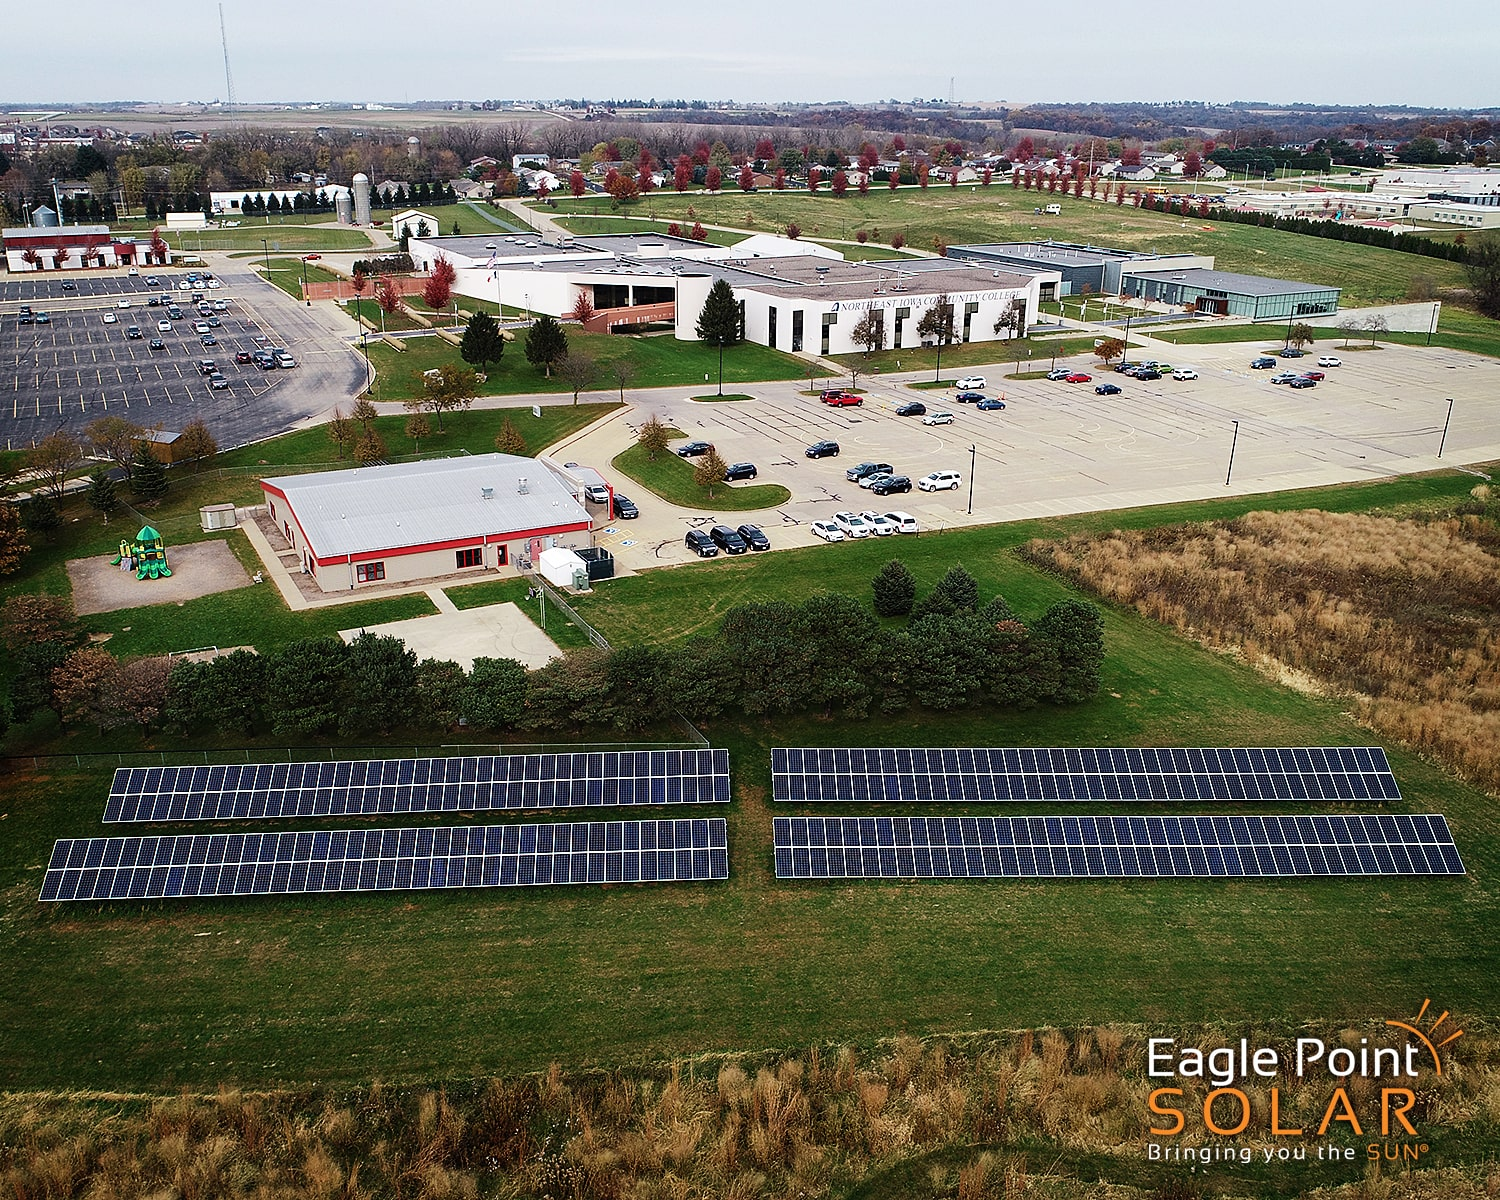 Photo of academic ground mounted solar array